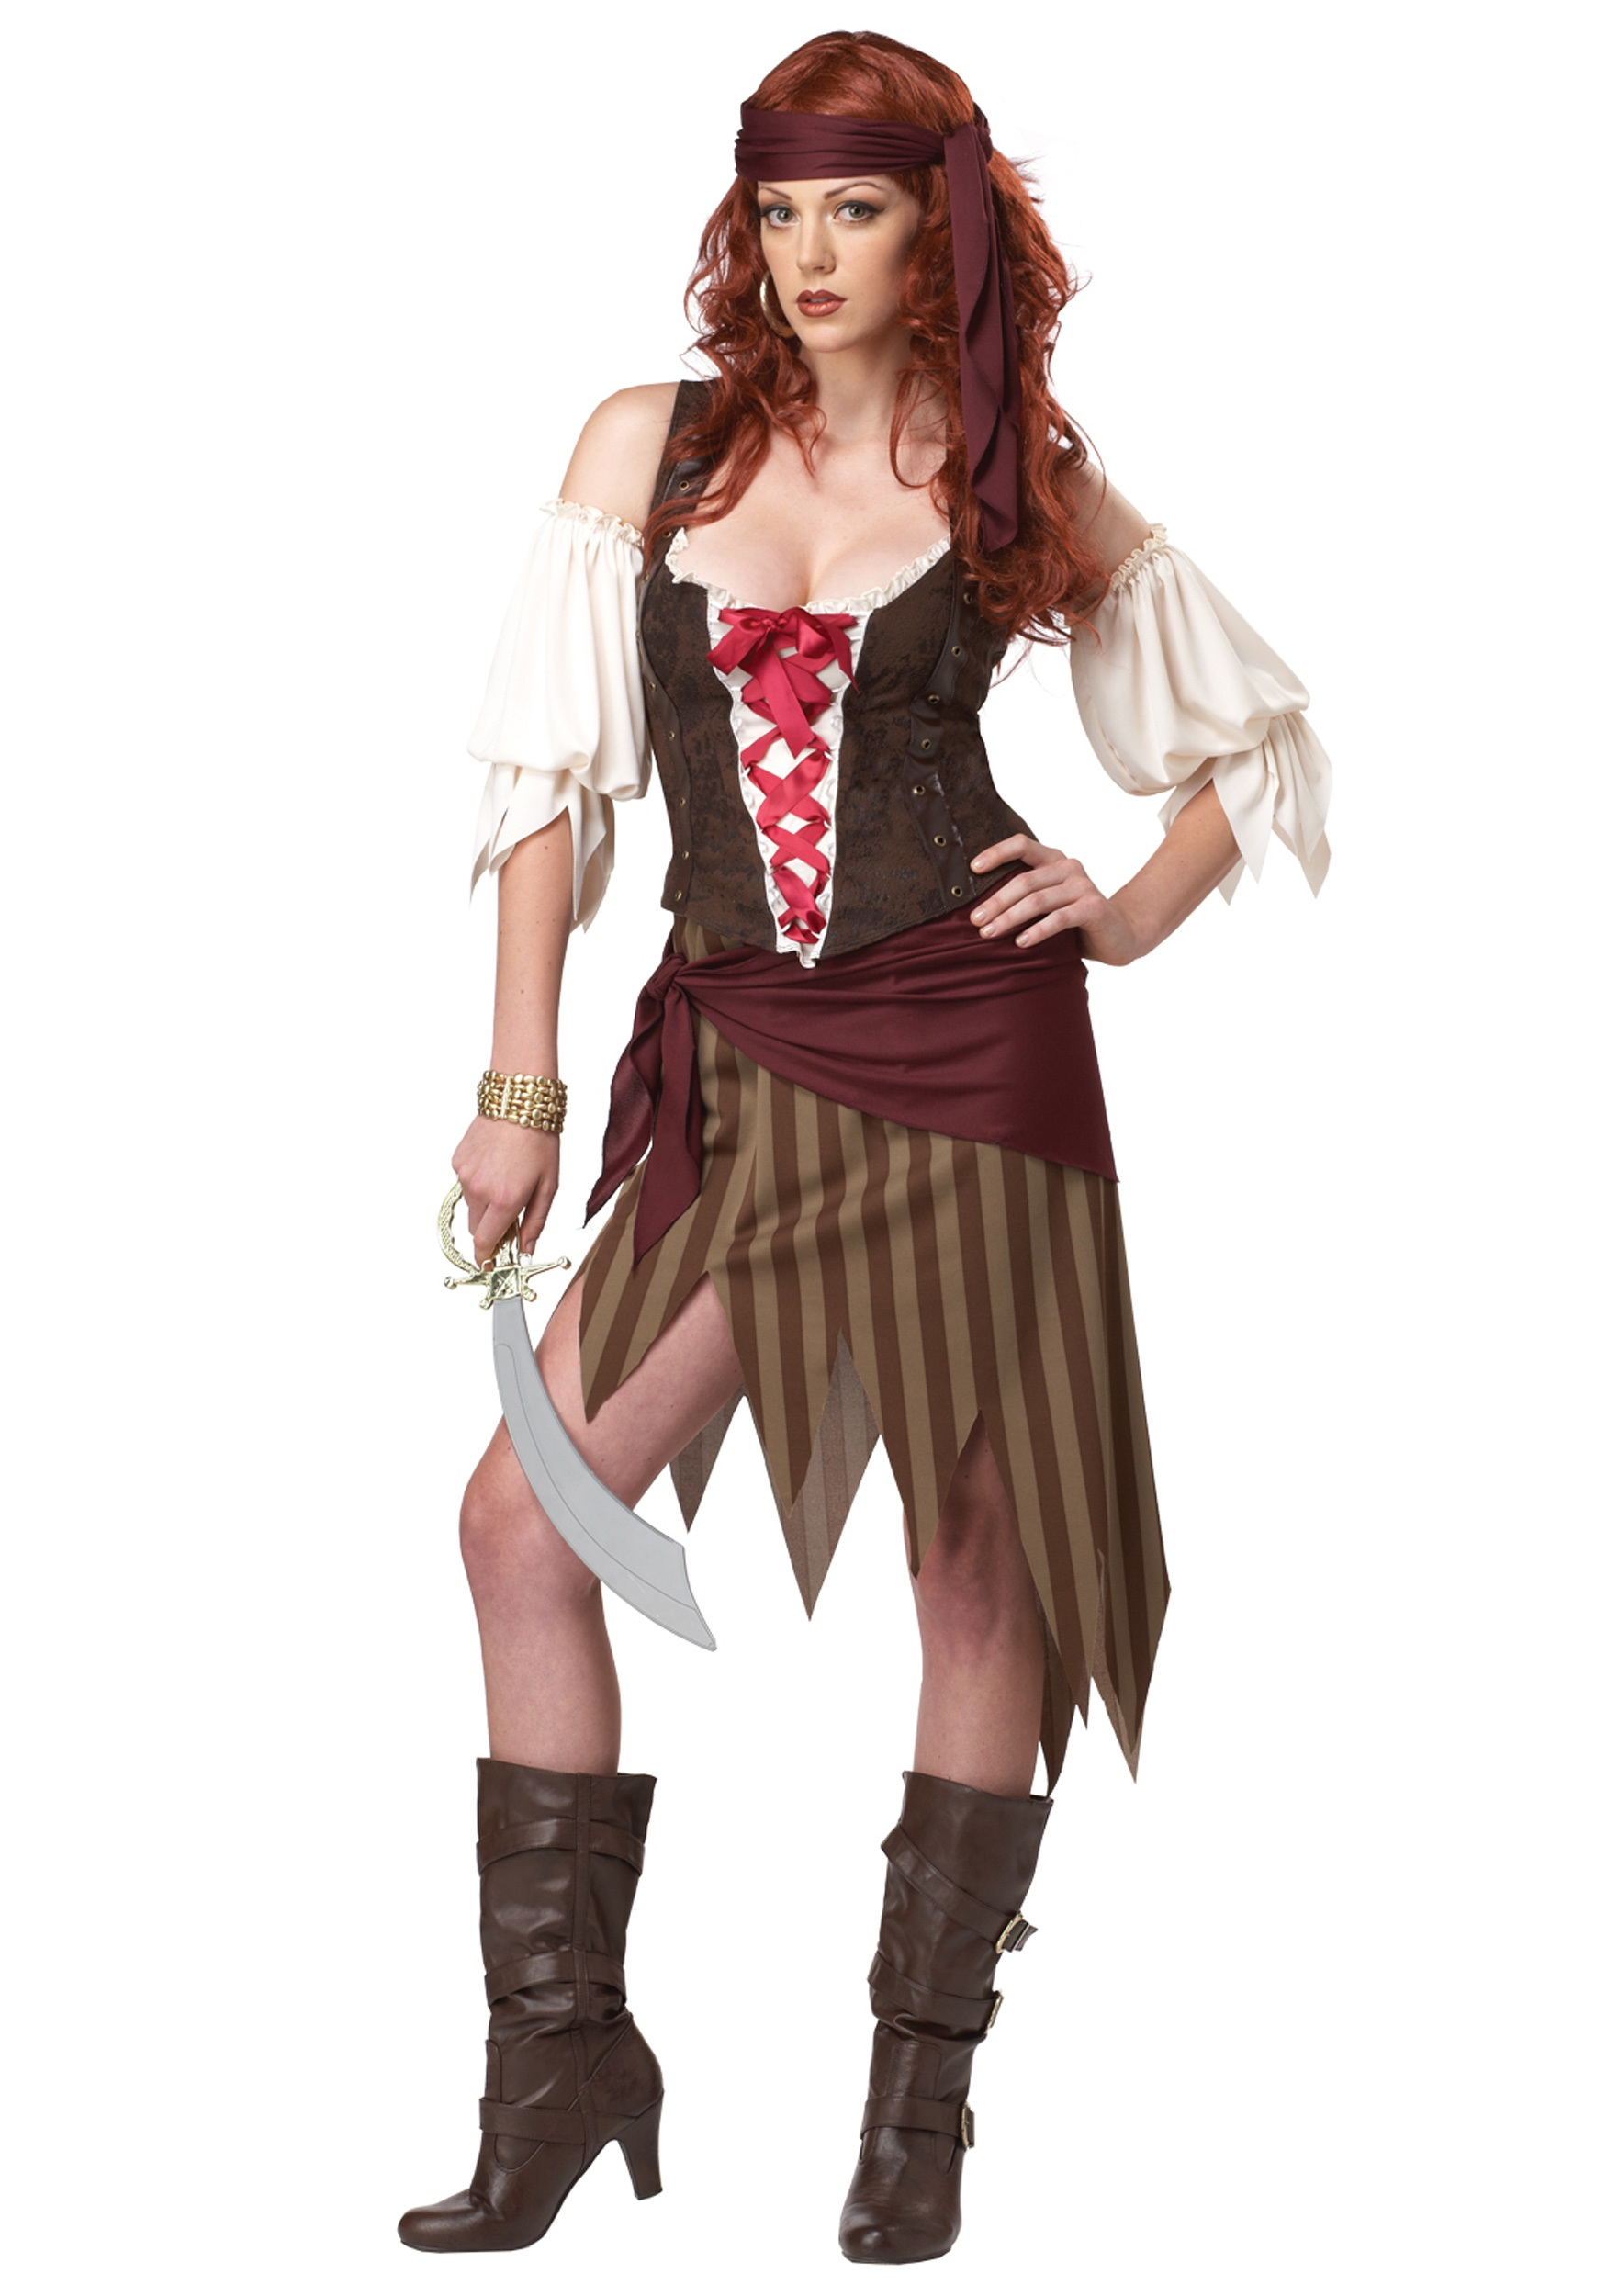 Womens Pirate Halloween Costumes at Low Wholesale Prices